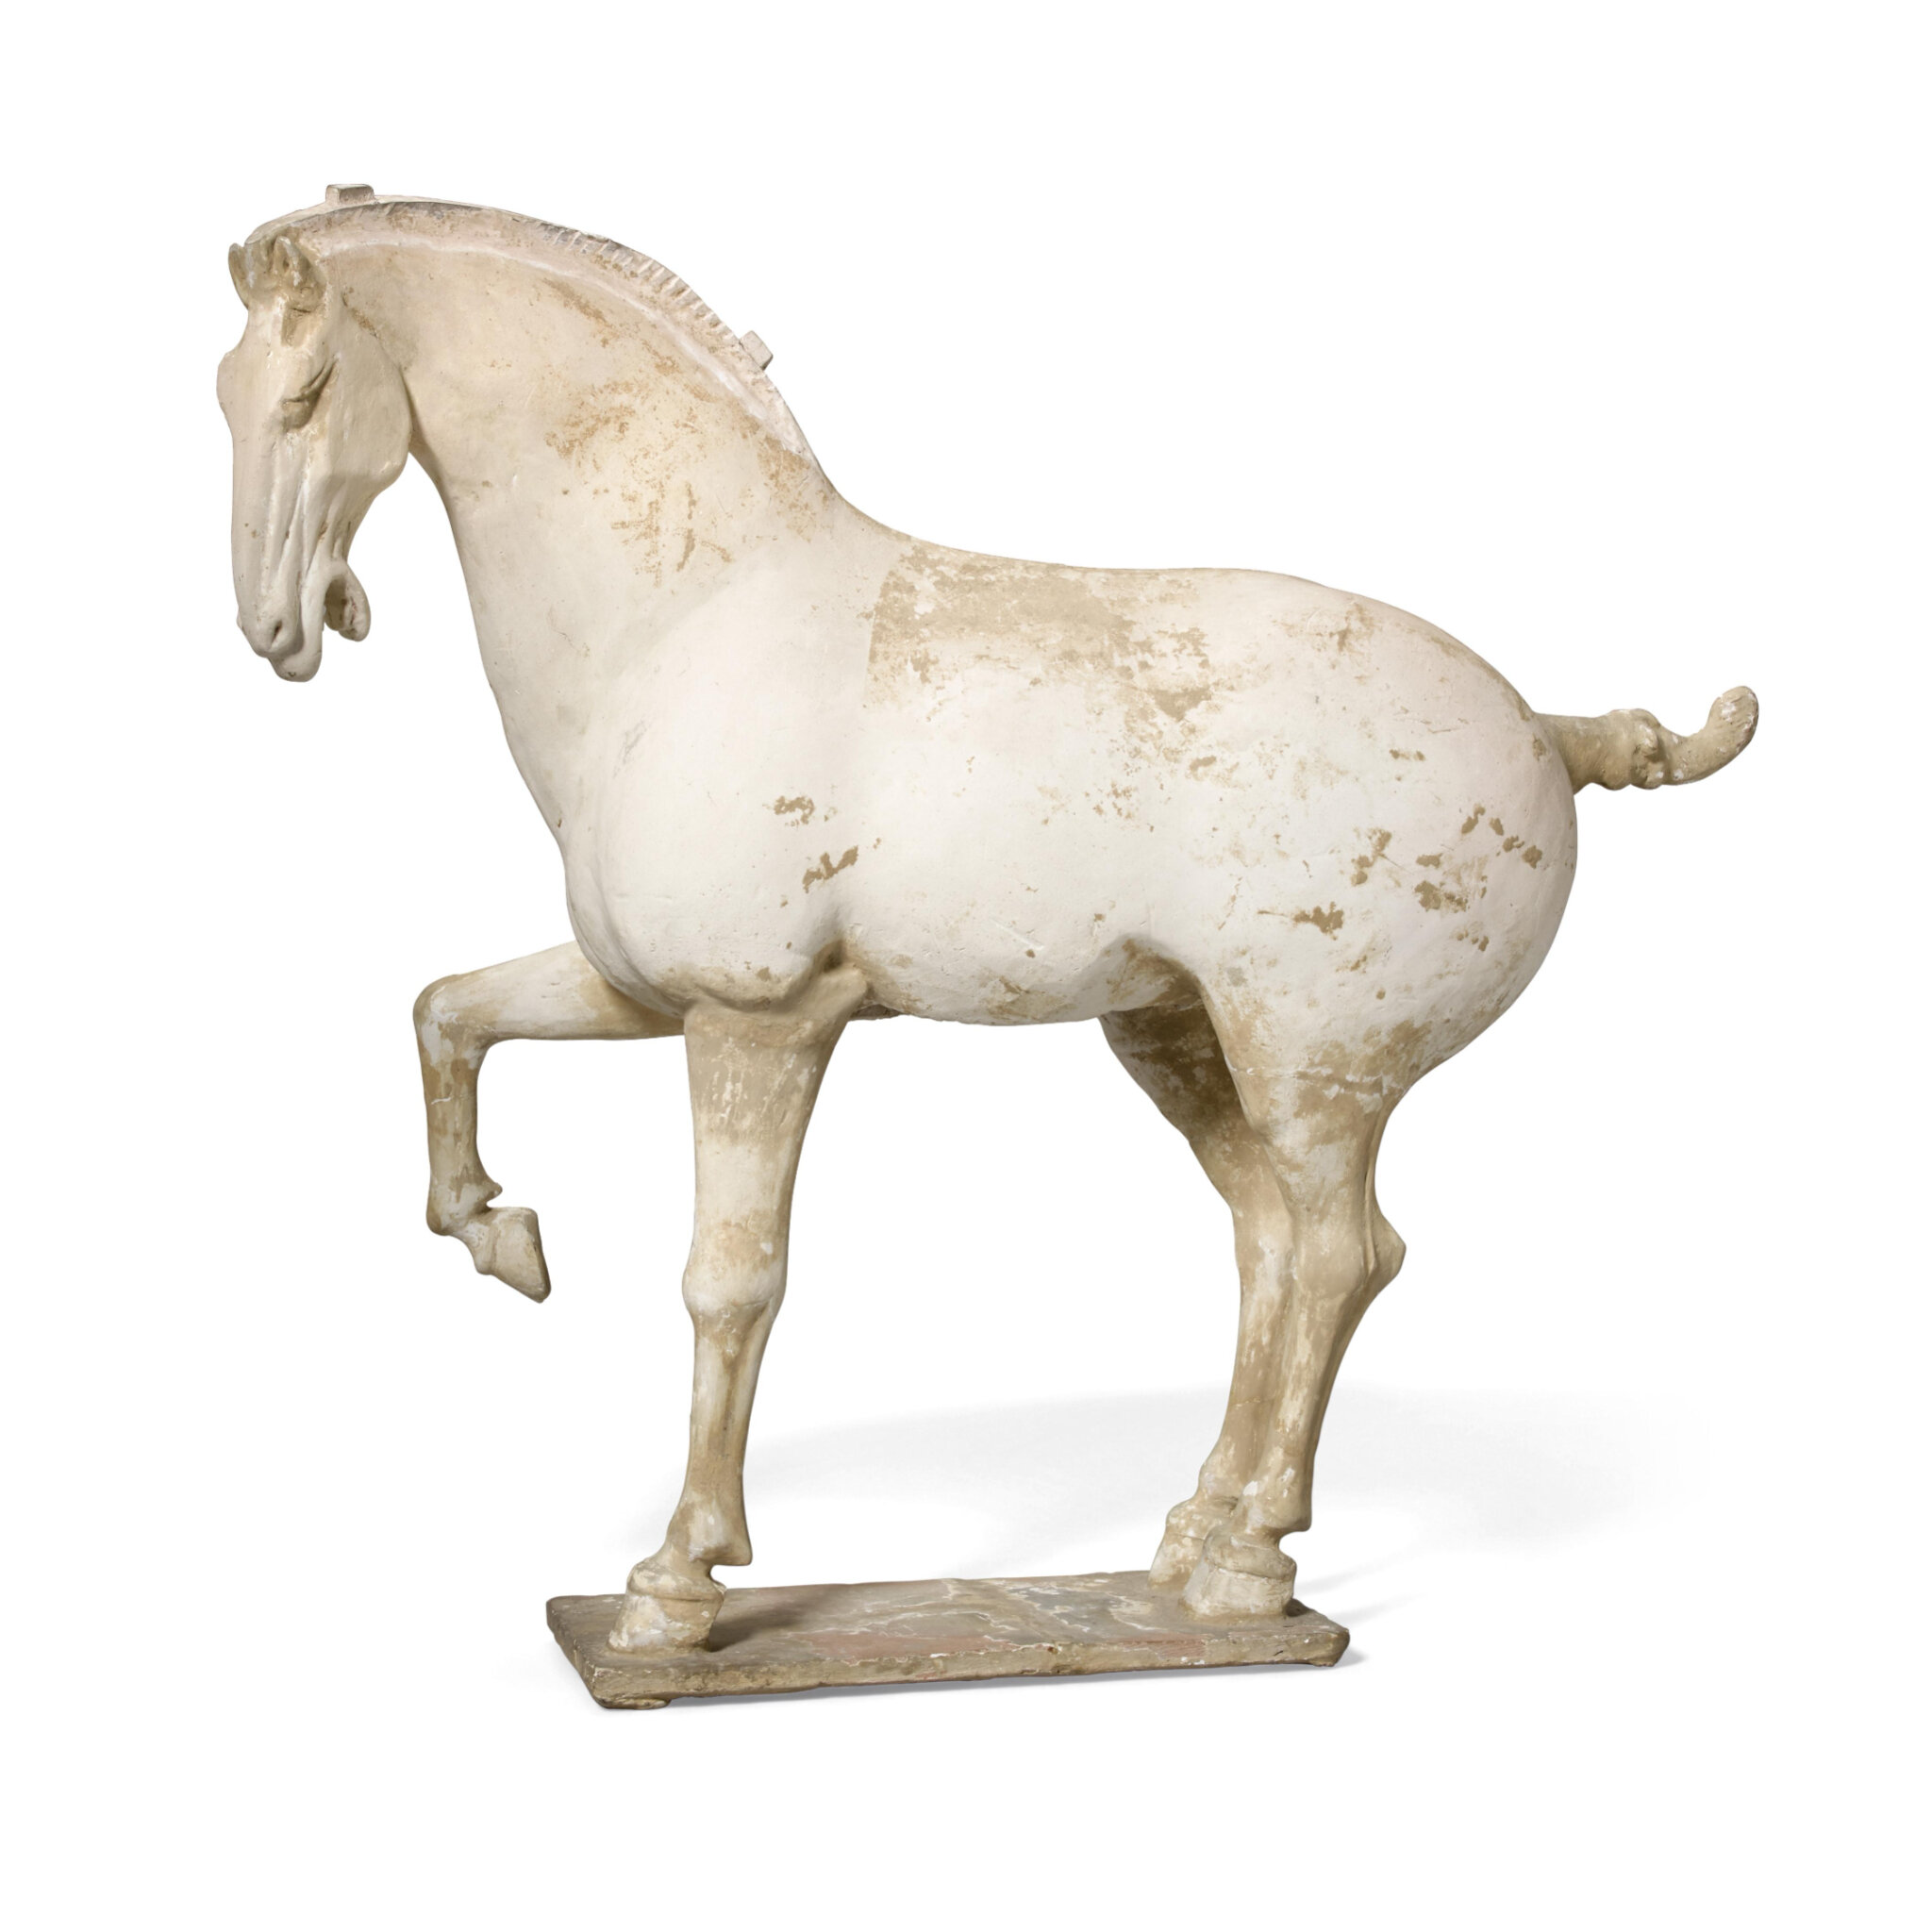 An unglazed pottery horse, Tang dynasty